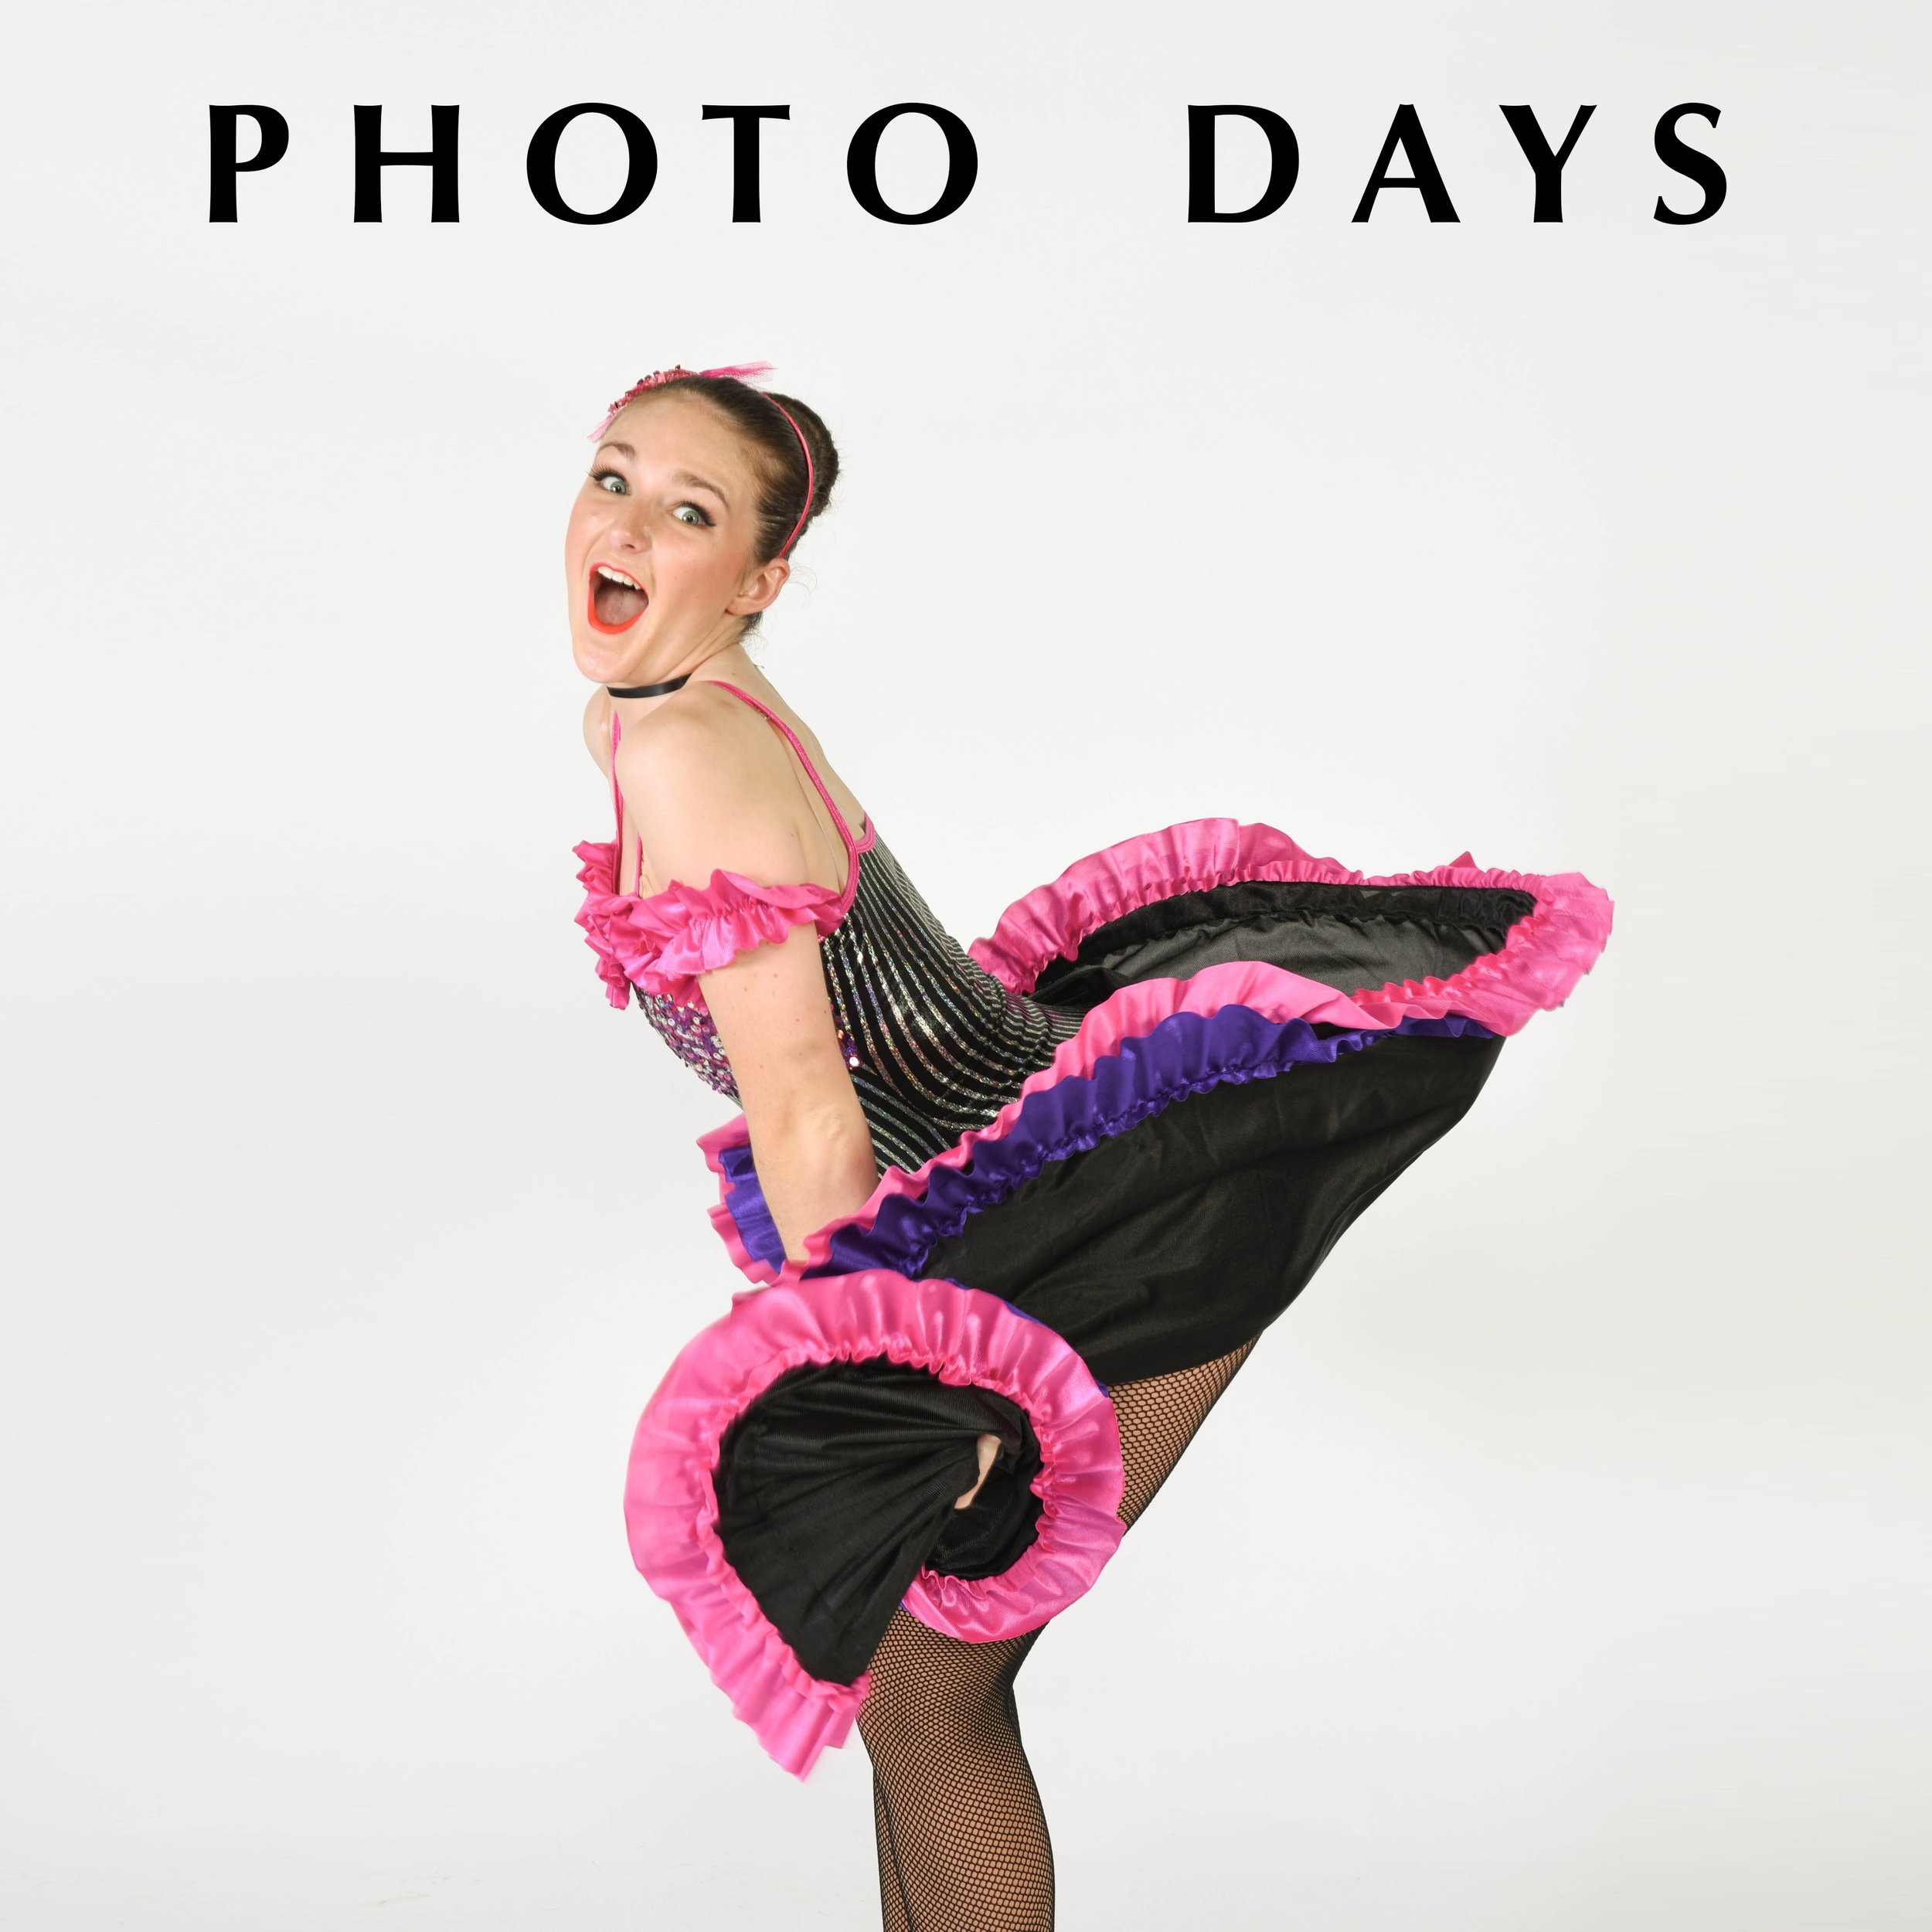 - Capture the magic of your dance school concert with our Photo Day service. Dance School Photo Days are a great opportunity for dance teachers to update their promotional material but most importantly, they make beautiful keepsakes for the dancers to treasure for years to come. Click HERE to find out more details about holding a Photo Day at your school.